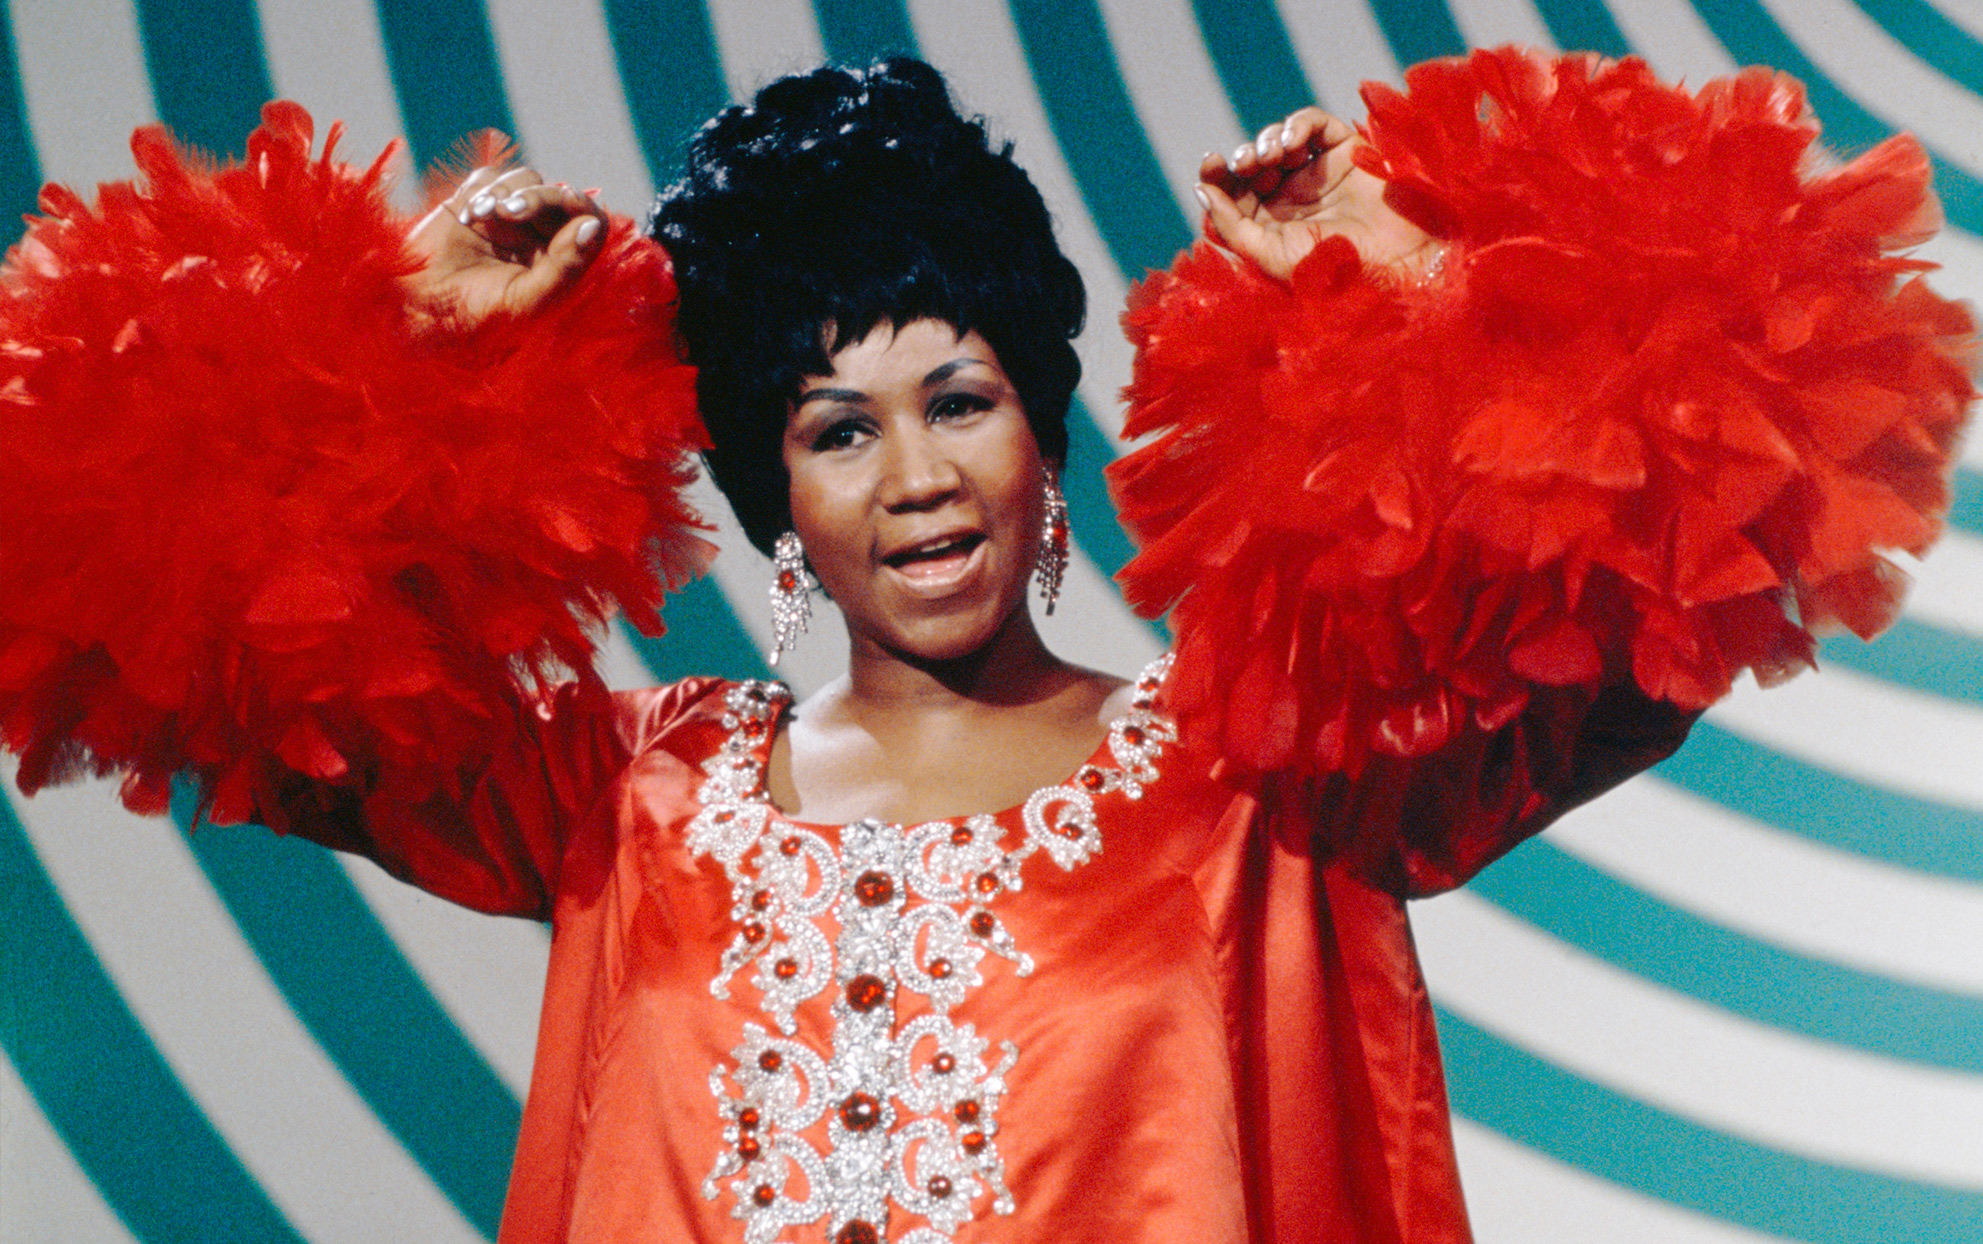 Aretha Franklin in a red dress with a turquoise background